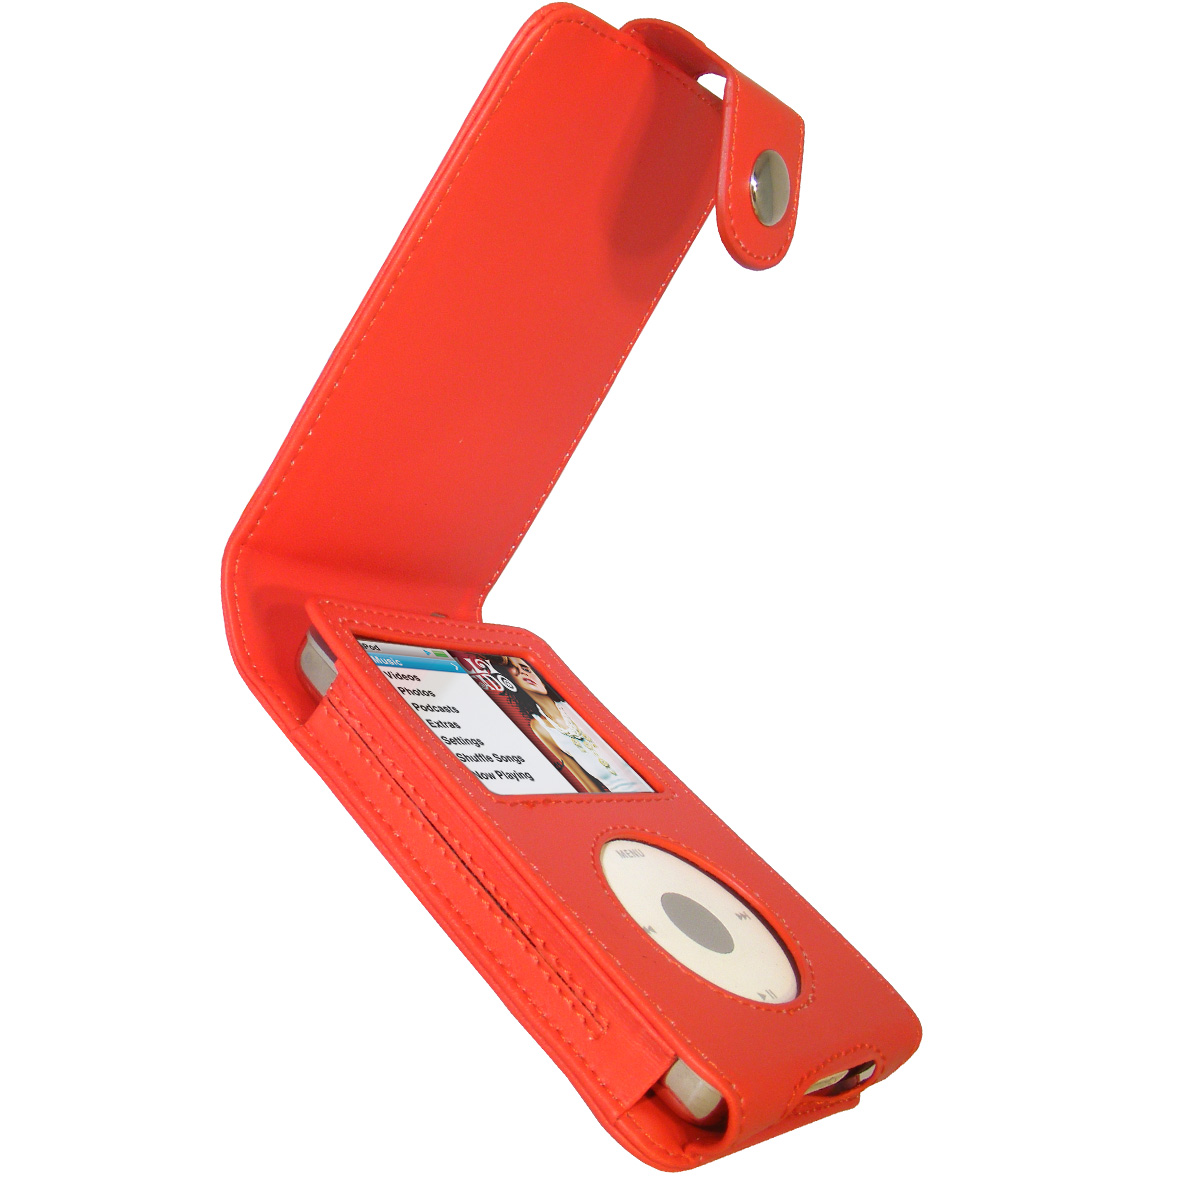 iGadgitz Red PU Leather Case for Apple iPod Classic 80gb, 120gb & latest 160gb + Belt Clip & Screen Protector